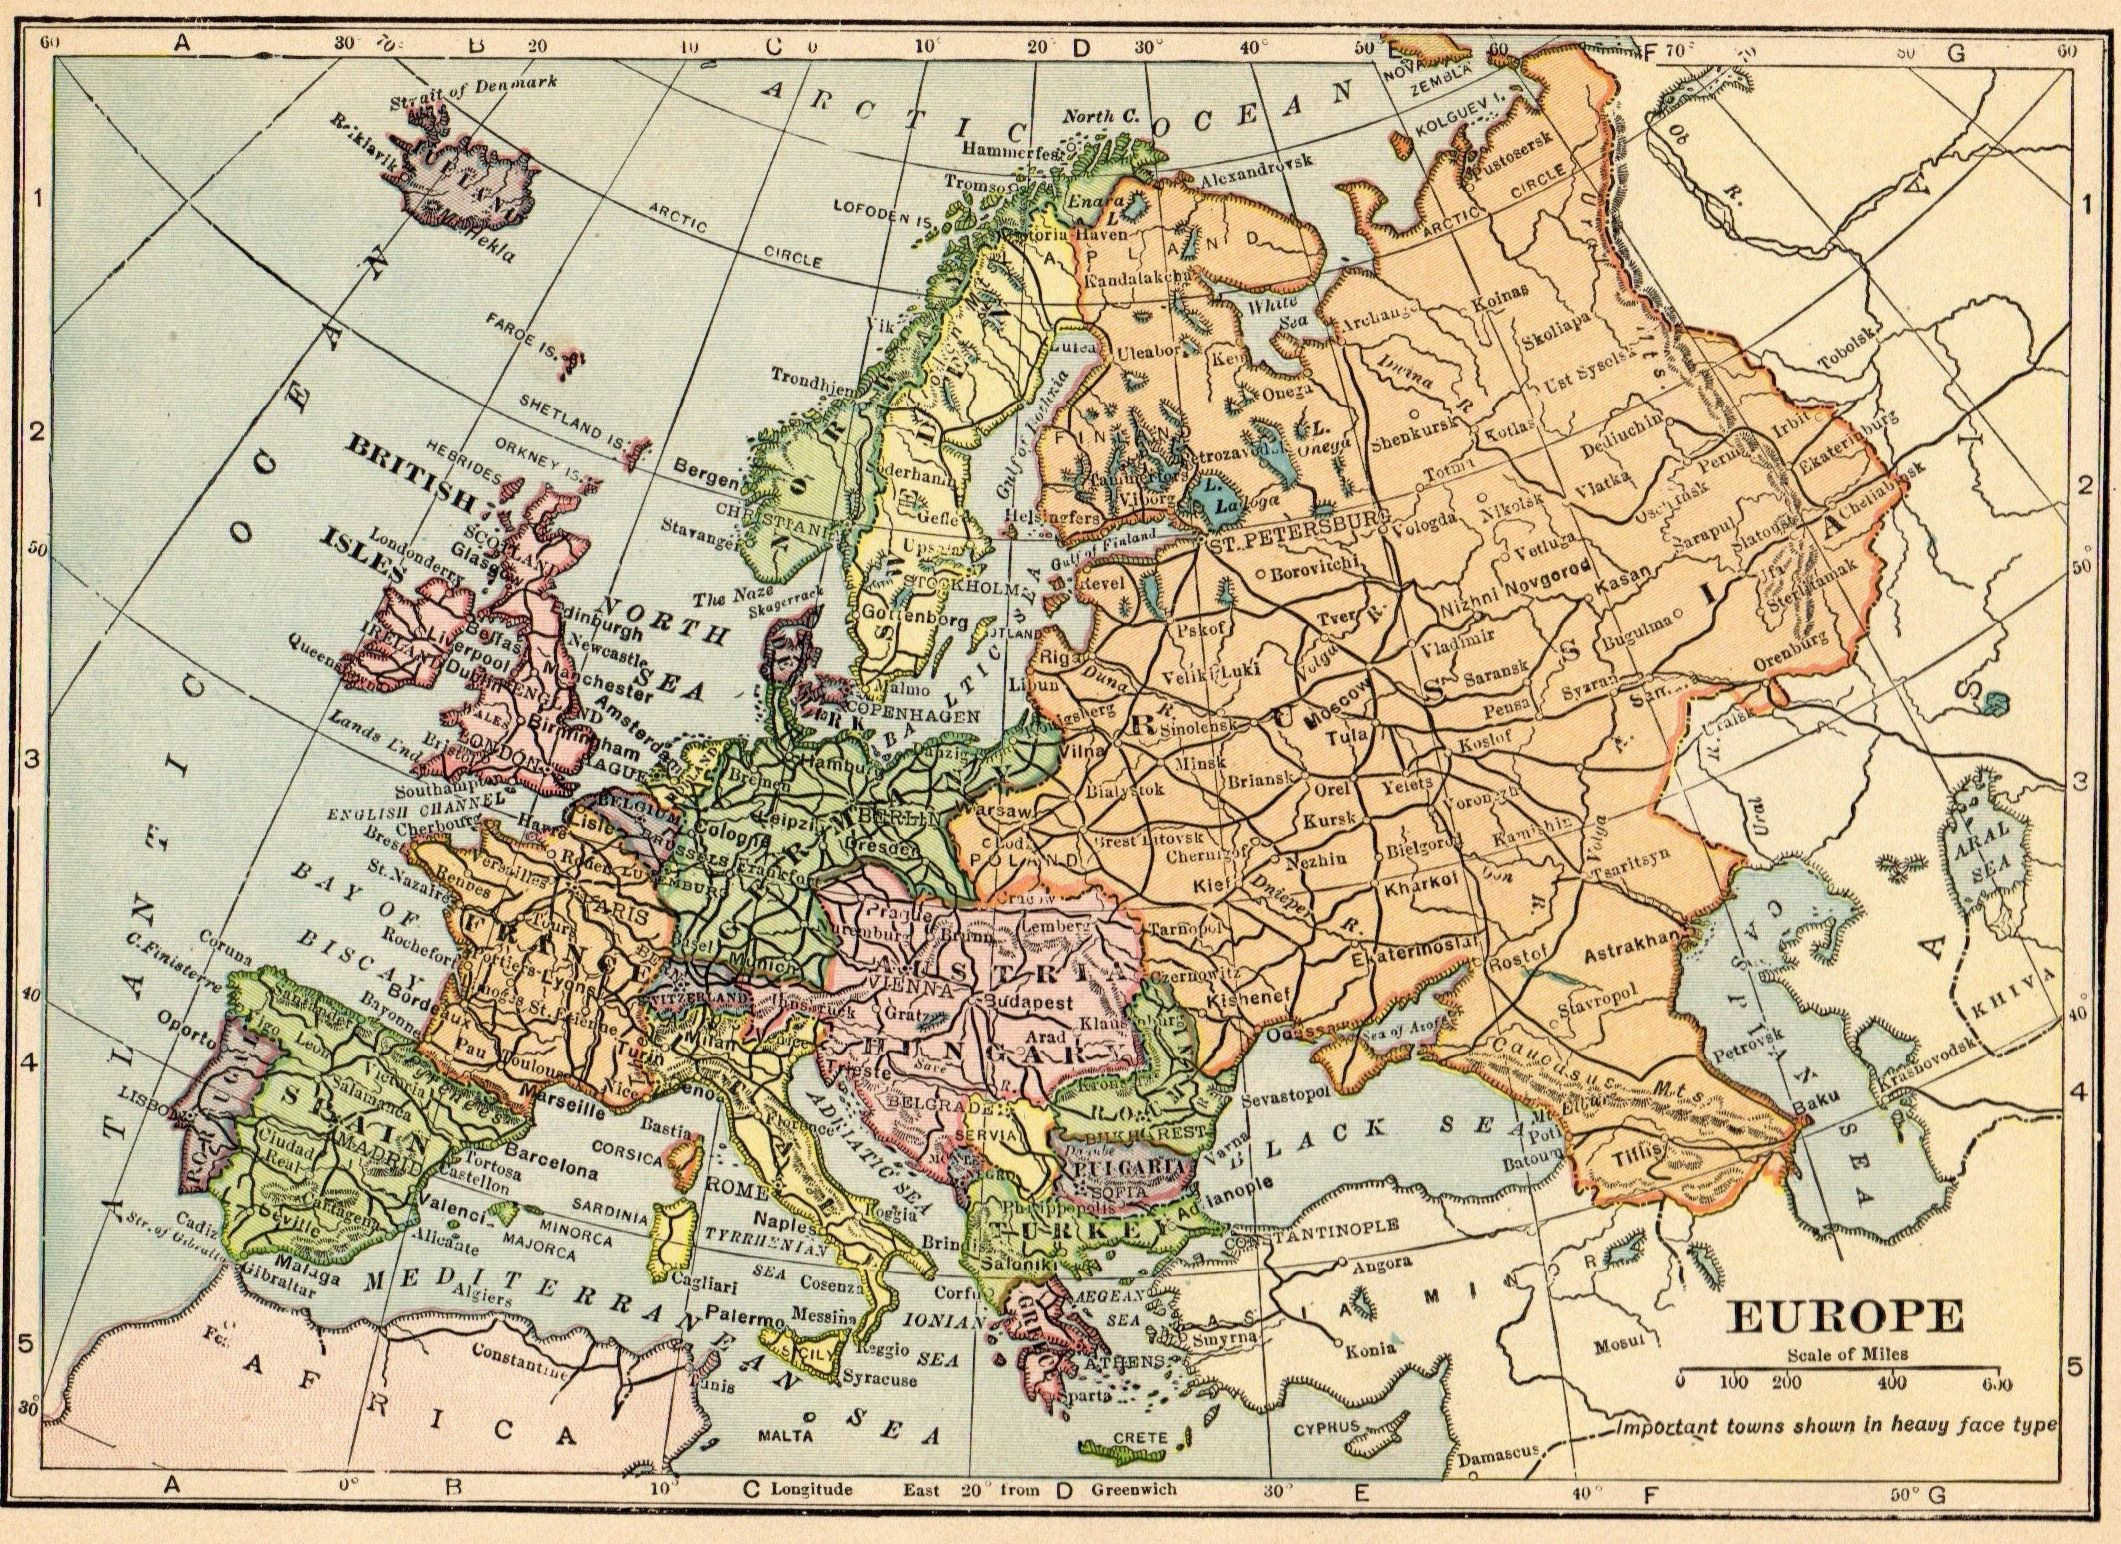 1913 Antique EUROPE Map Vintage Map of EUROPE Gallery Wall ...